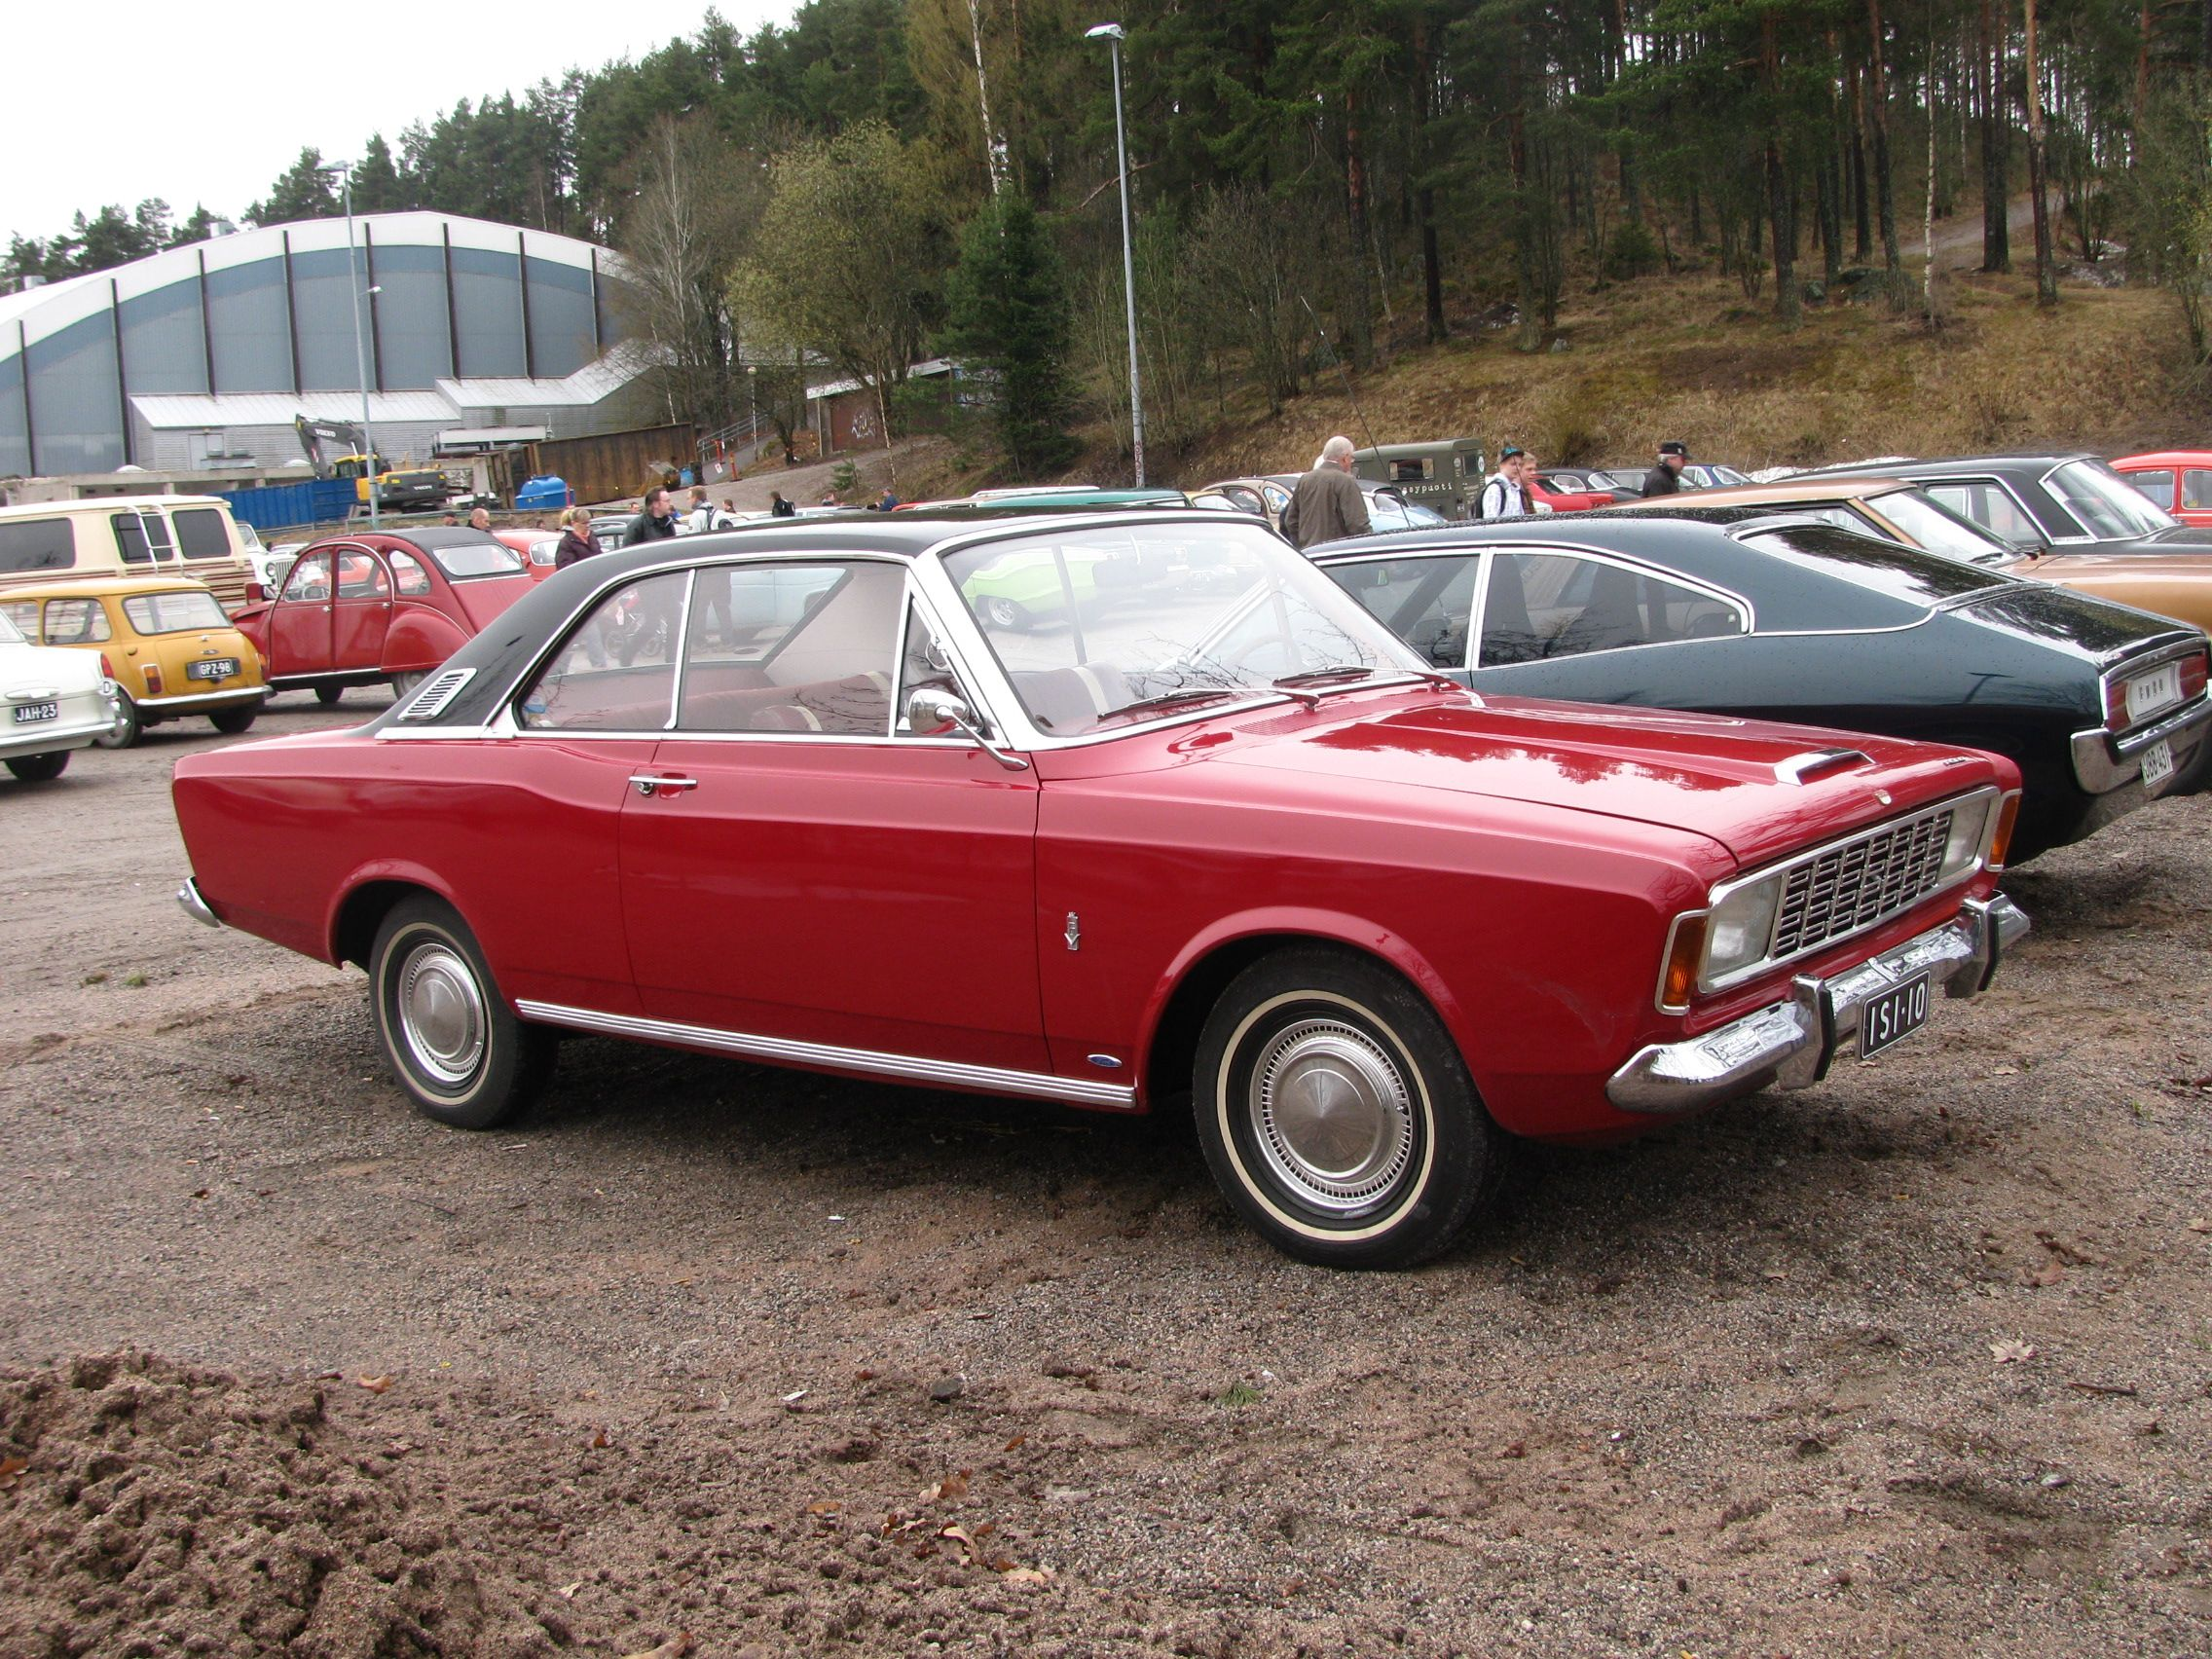 1968 ford taunus 20m p7 hardtop coup automotive pinterest ford cars and auto ford. Black Bedroom Furniture Sets. Home Design Ideas